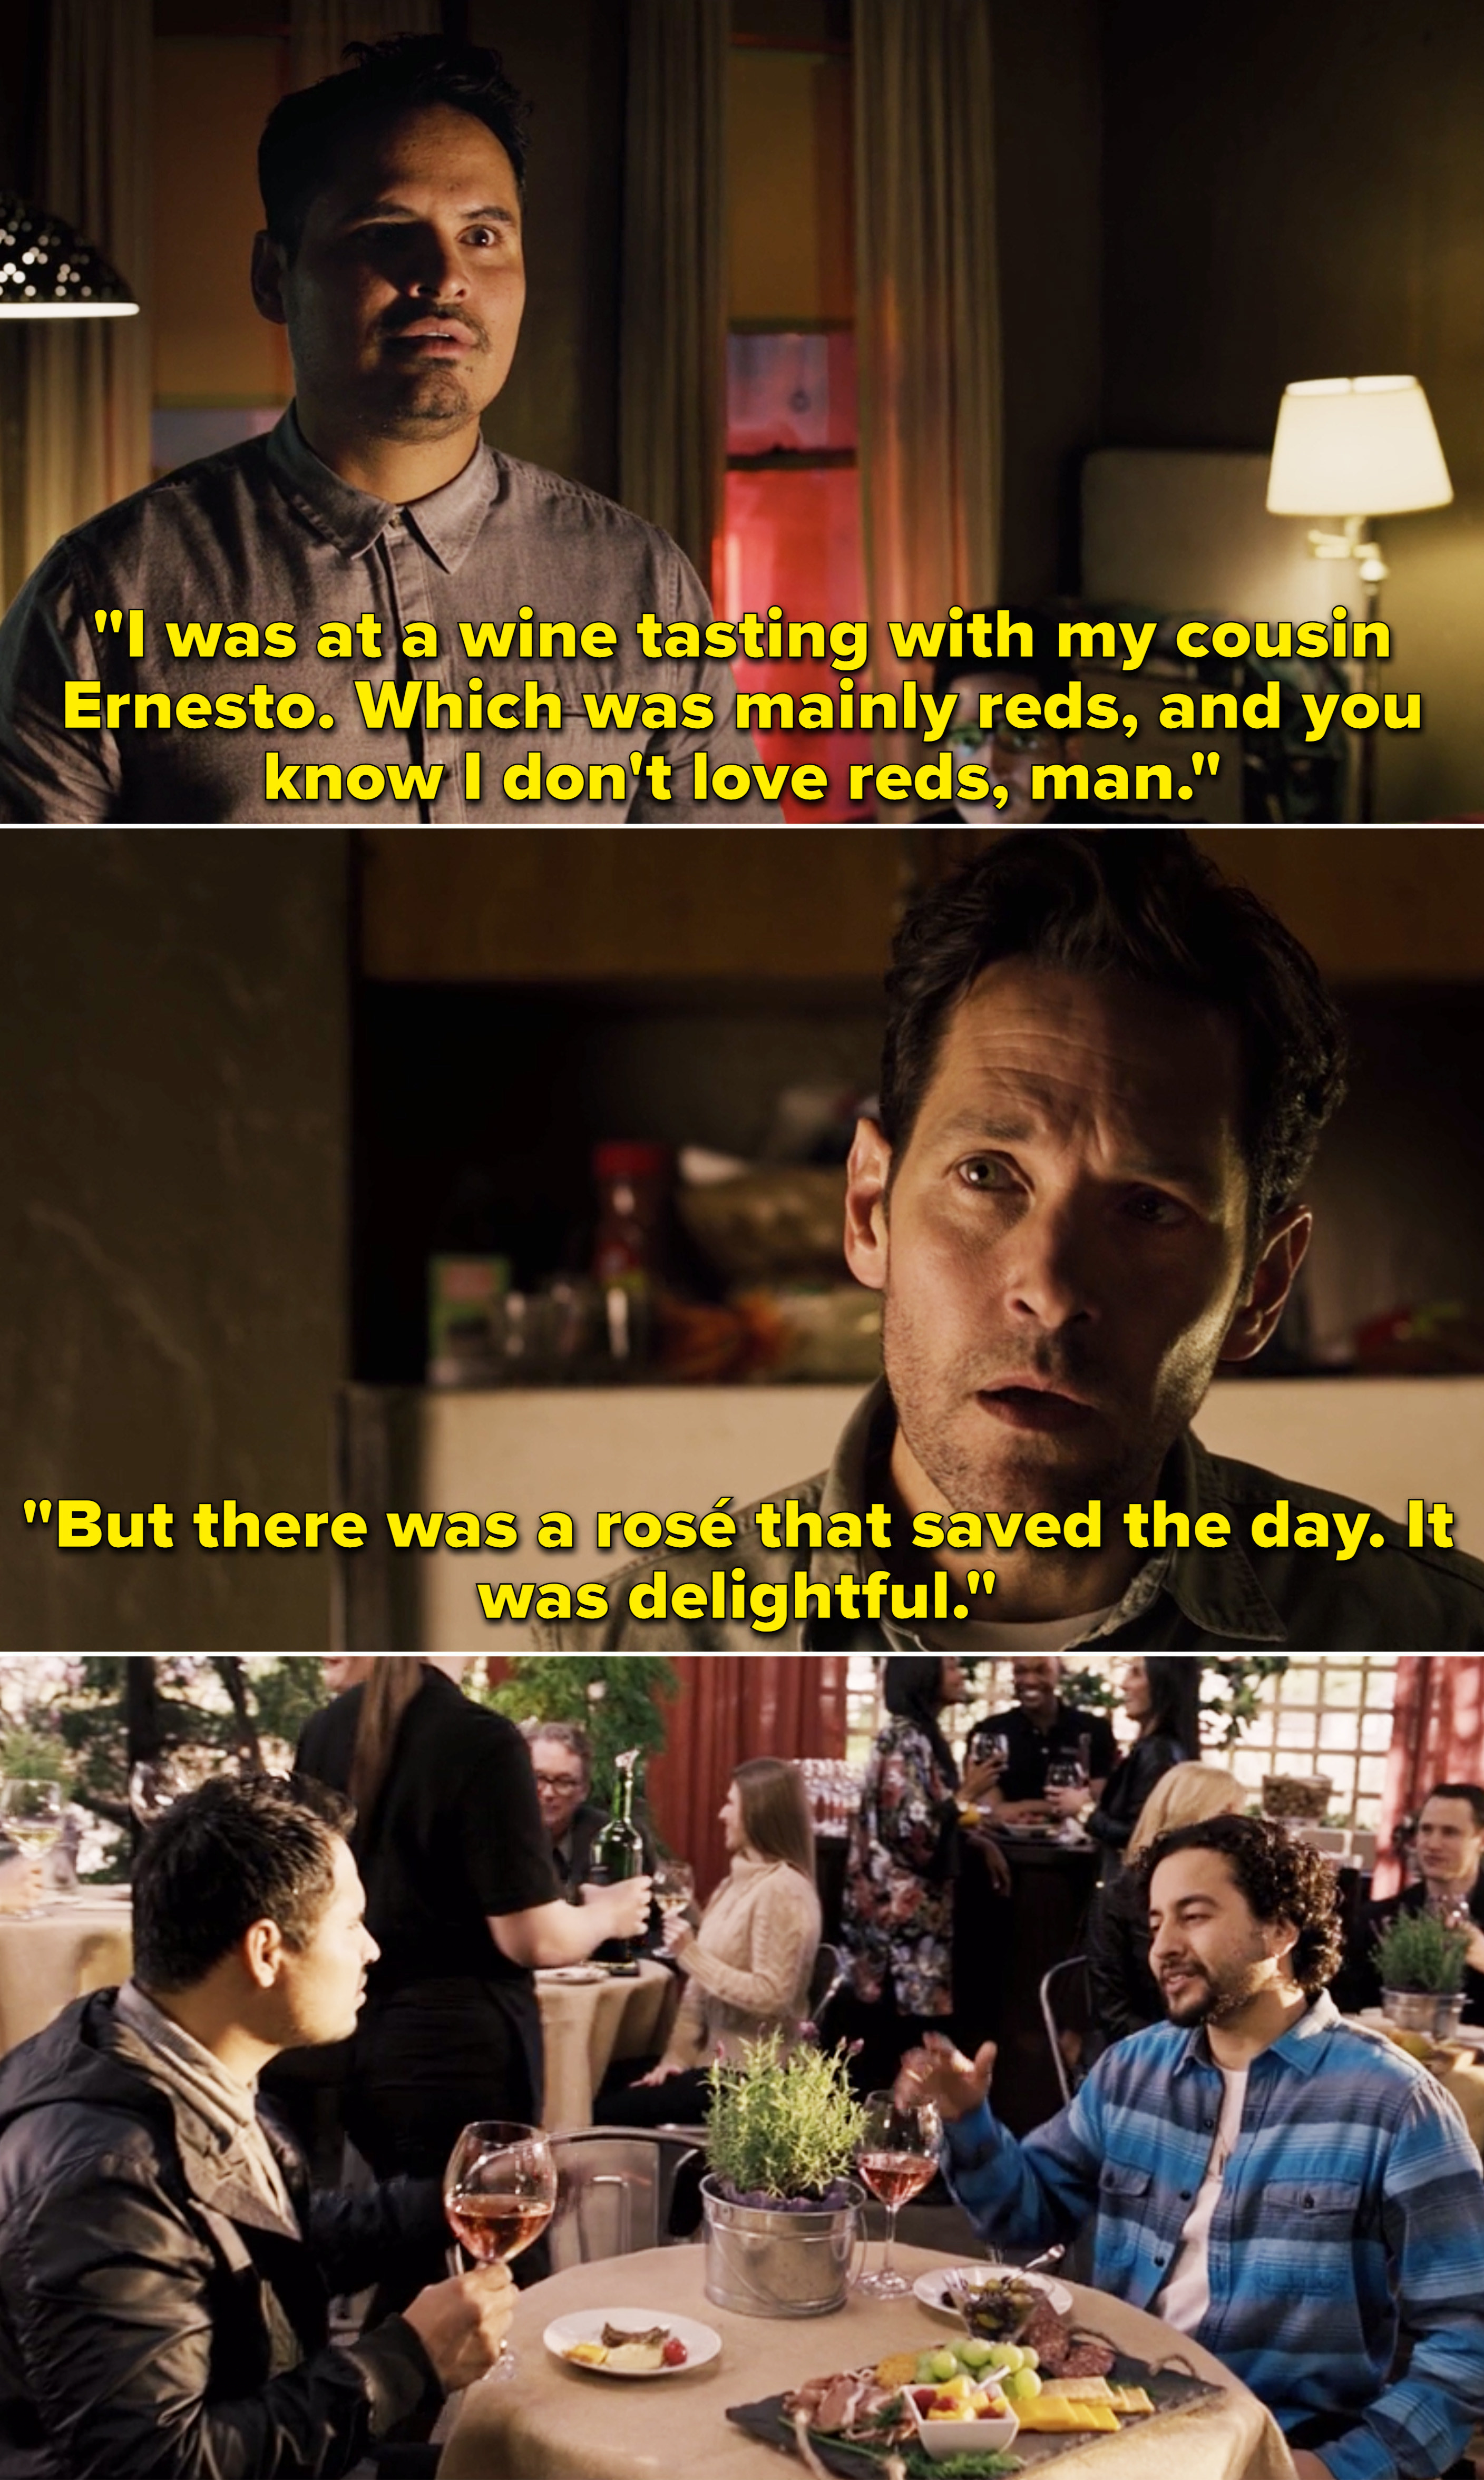 Luis telling Scott about a wine tasting he went to with his cousin Ernesto